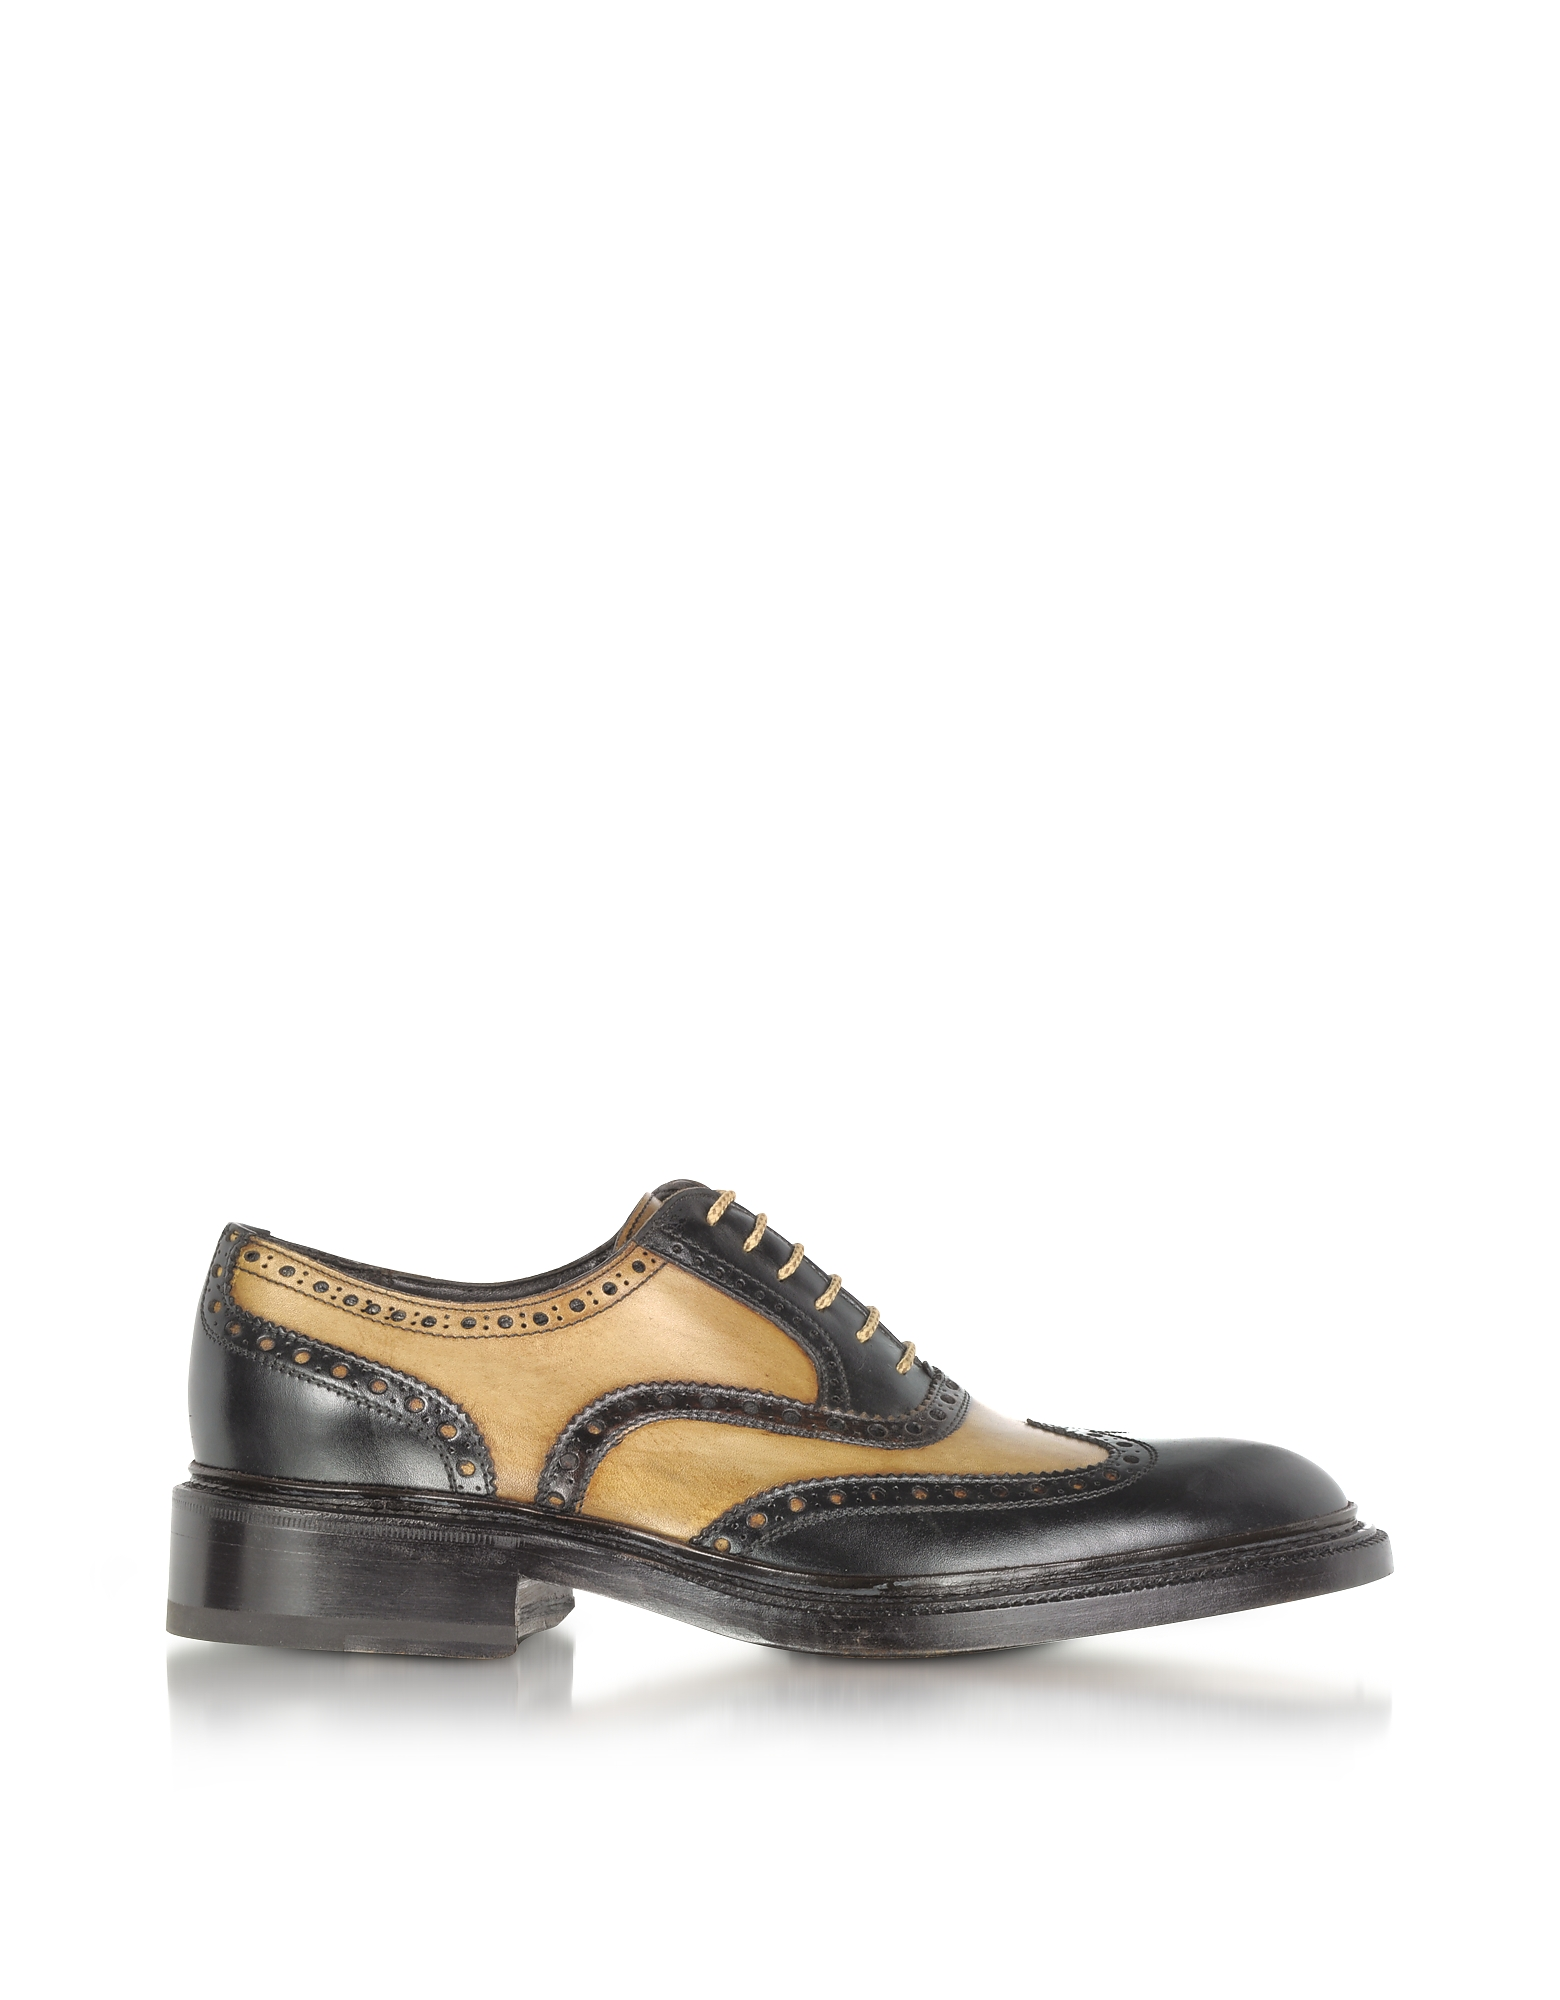 1920s Boardwalk Empire Shoes Boardwalk Empire- Forzieri Designer Shoes Italian Handcrafted Two-tone Wingtip Oxford Shoes $891.00 AT vintagedancer.com